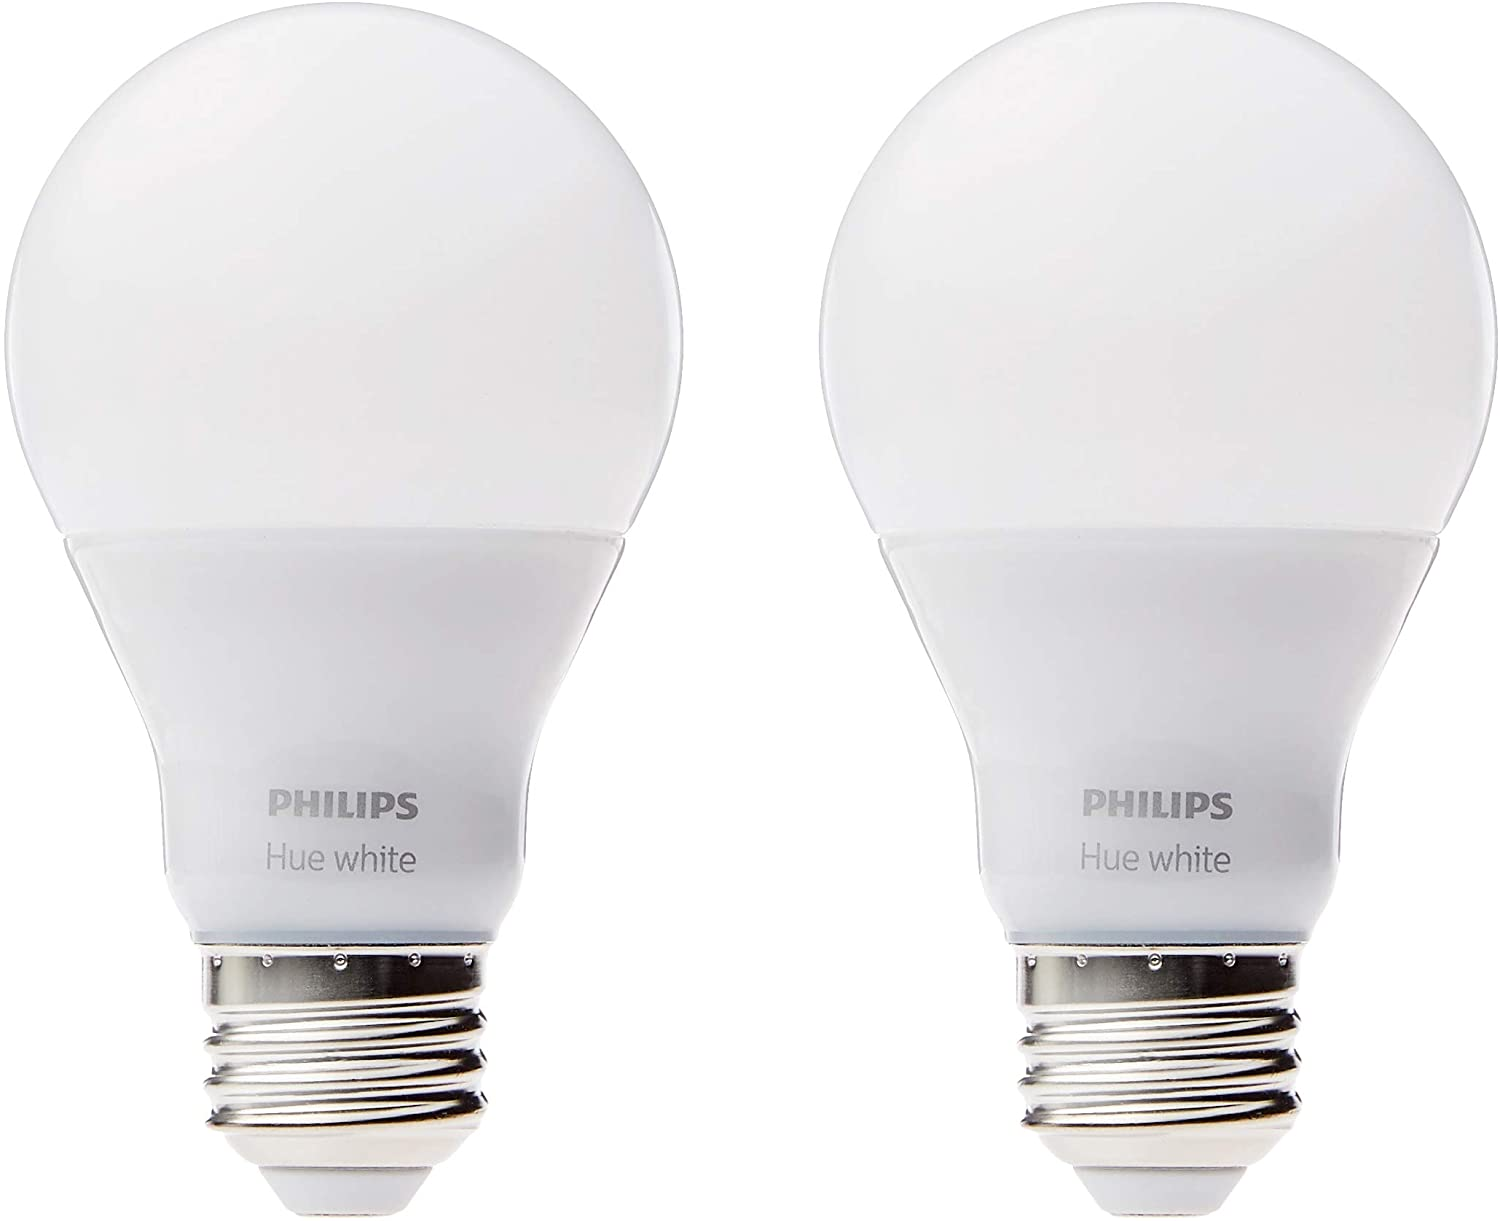 Philips hue Blanc A19 2 pack équivalent 60 W Dimmable LED